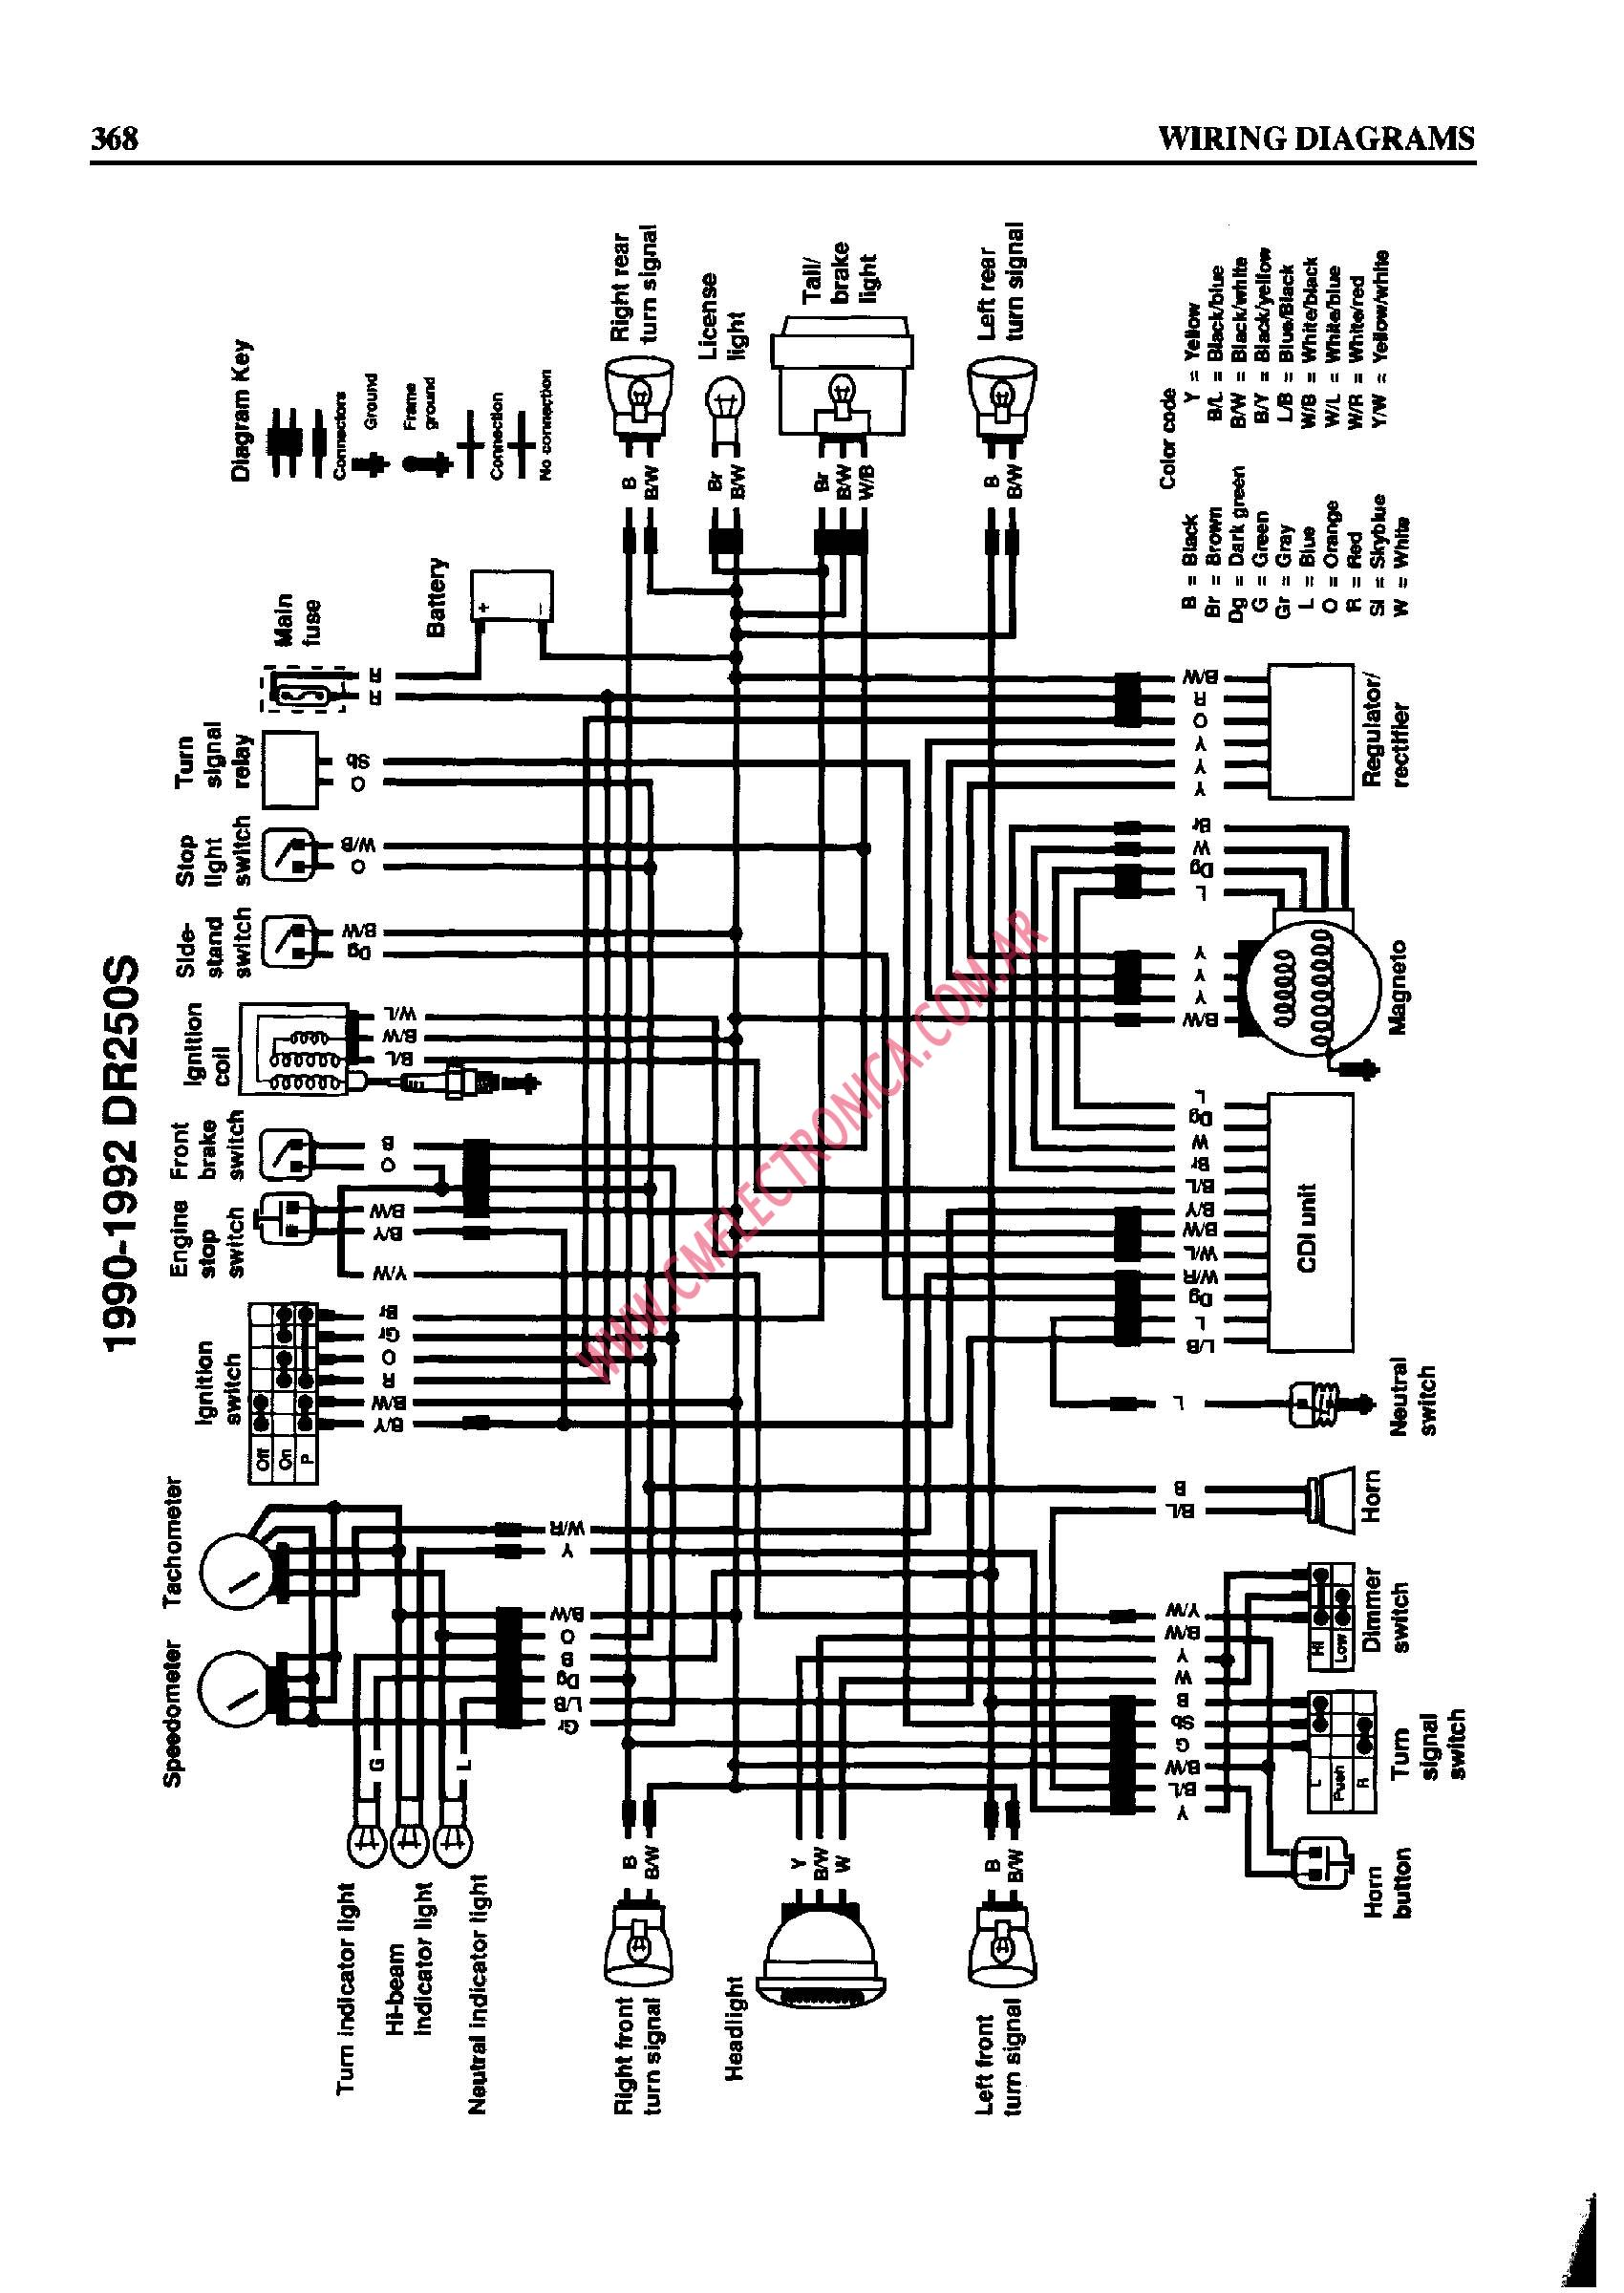 1988 chevrolet c1500 wiring diagram